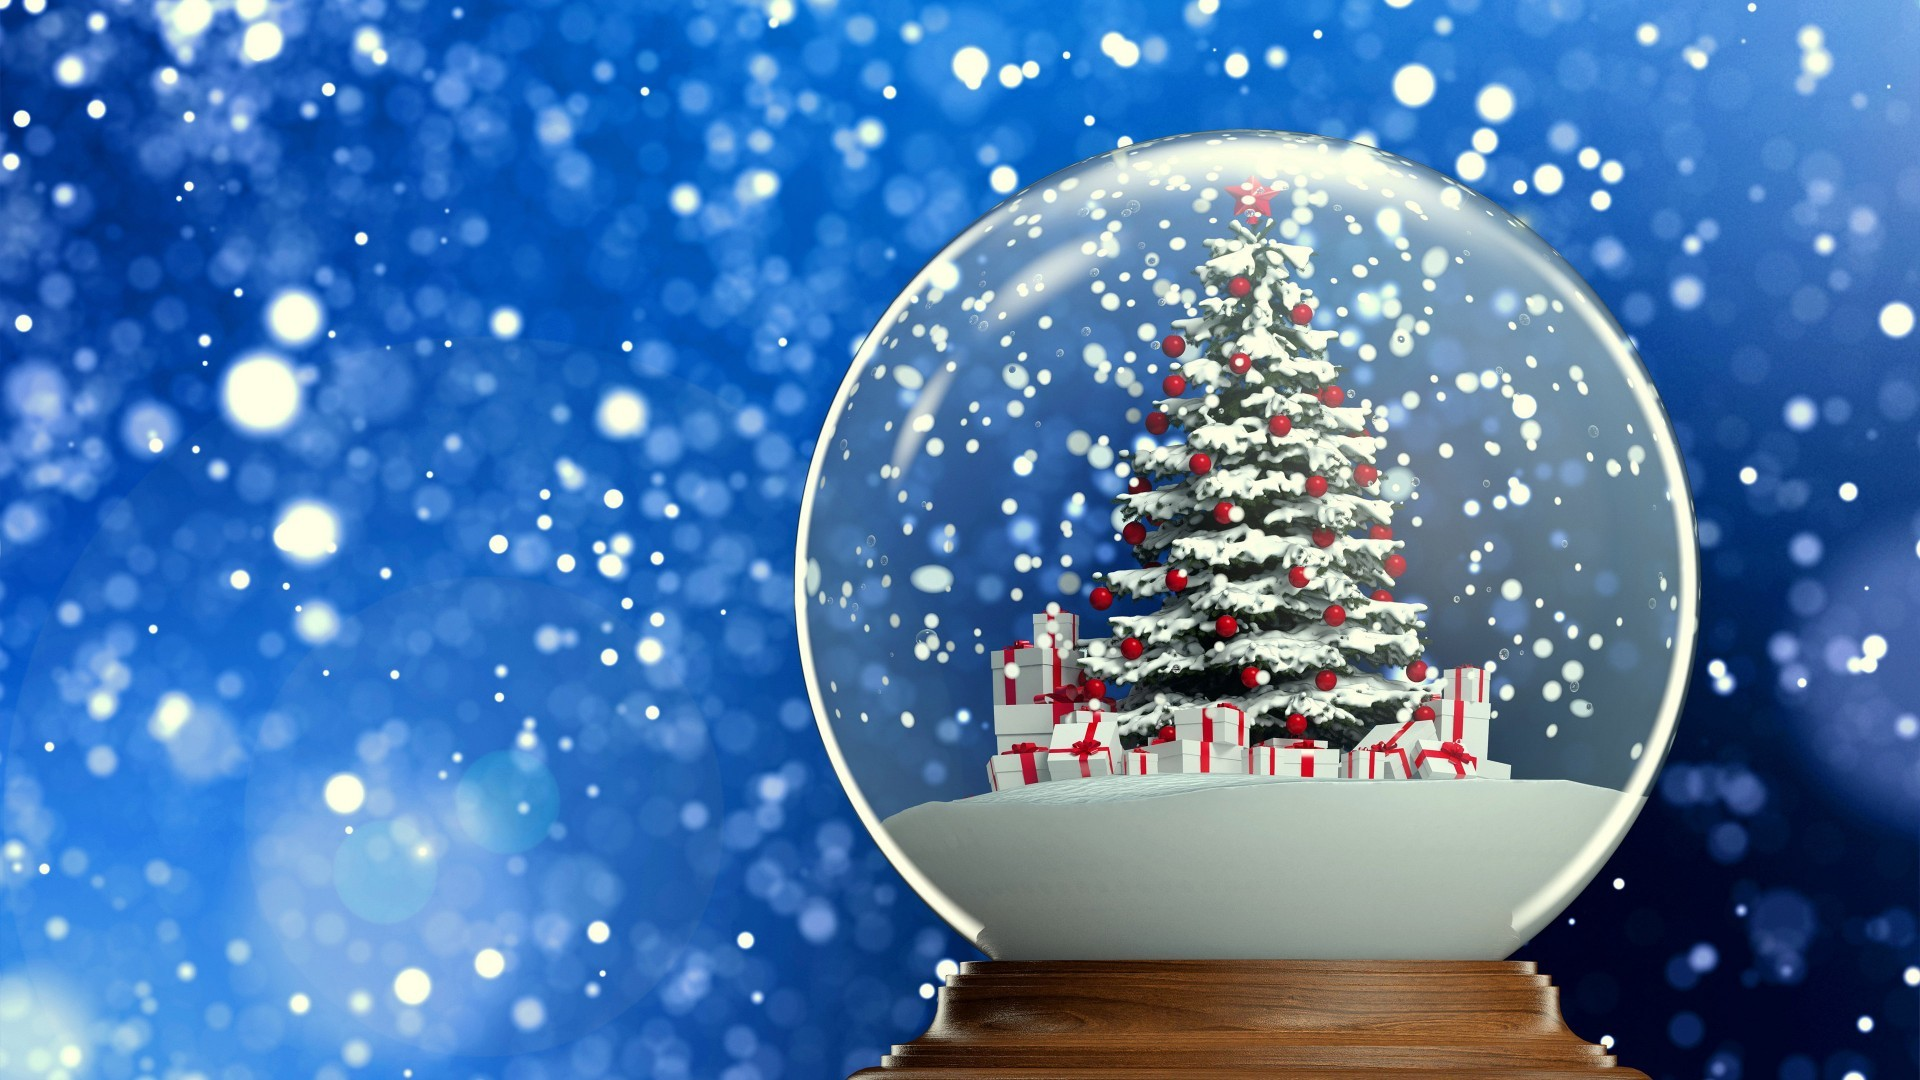 christmas snow globe wallpaper (63+ images)